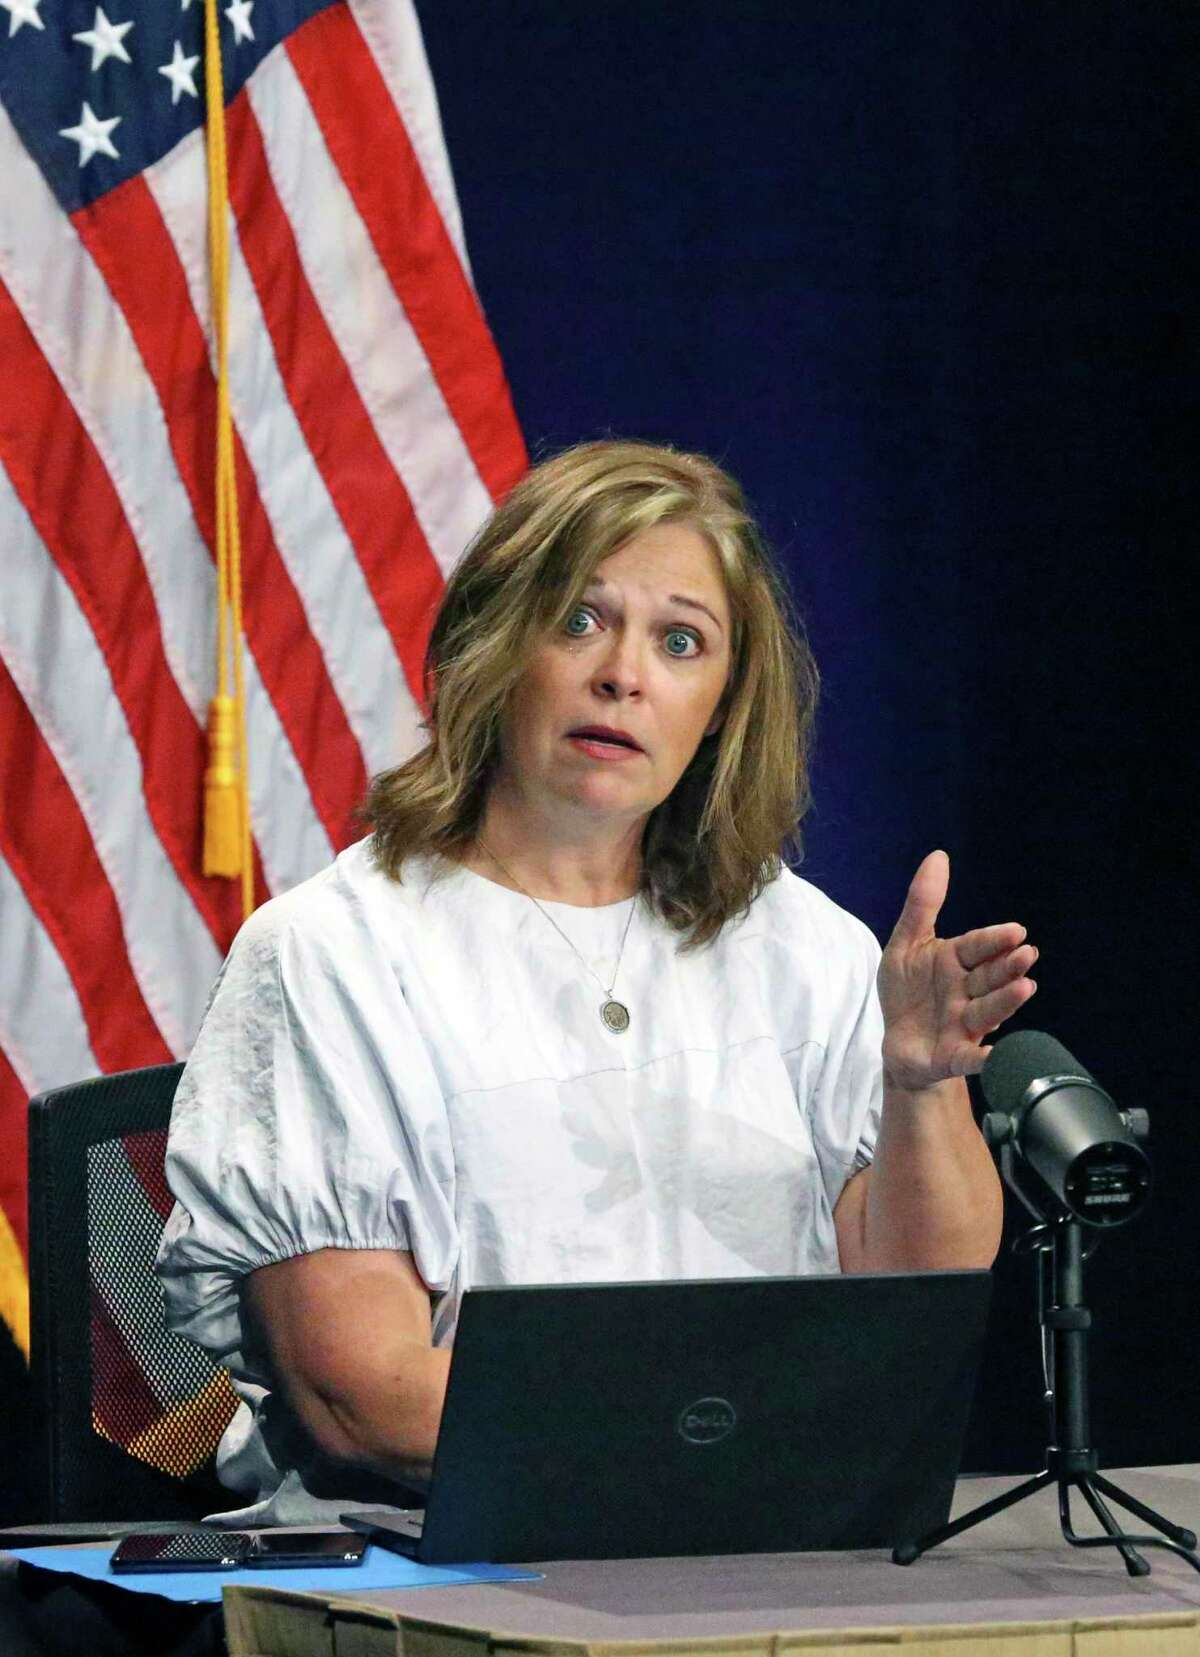 Metro health director Dawn Emerick makes a point as hospital administrators attend the daily COVID-19 briefing at Plaza de Armas on June 18, 2020.